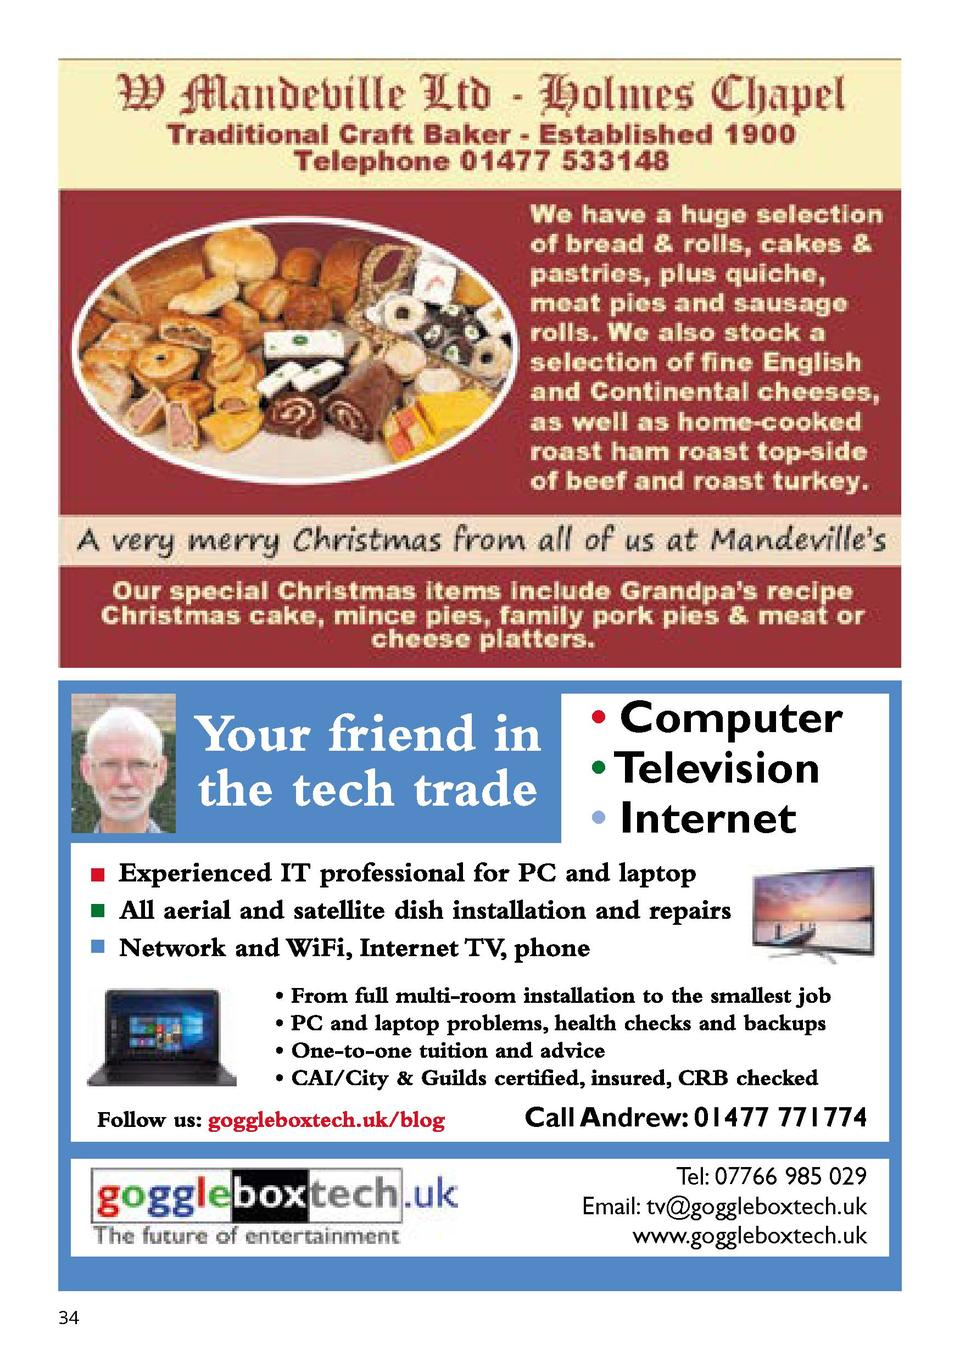 Computer     Television     Internet  Call Andrew  01477 771774 Tel  07766 985 029 Email  tv goggleboxtech.uk www.gogg...